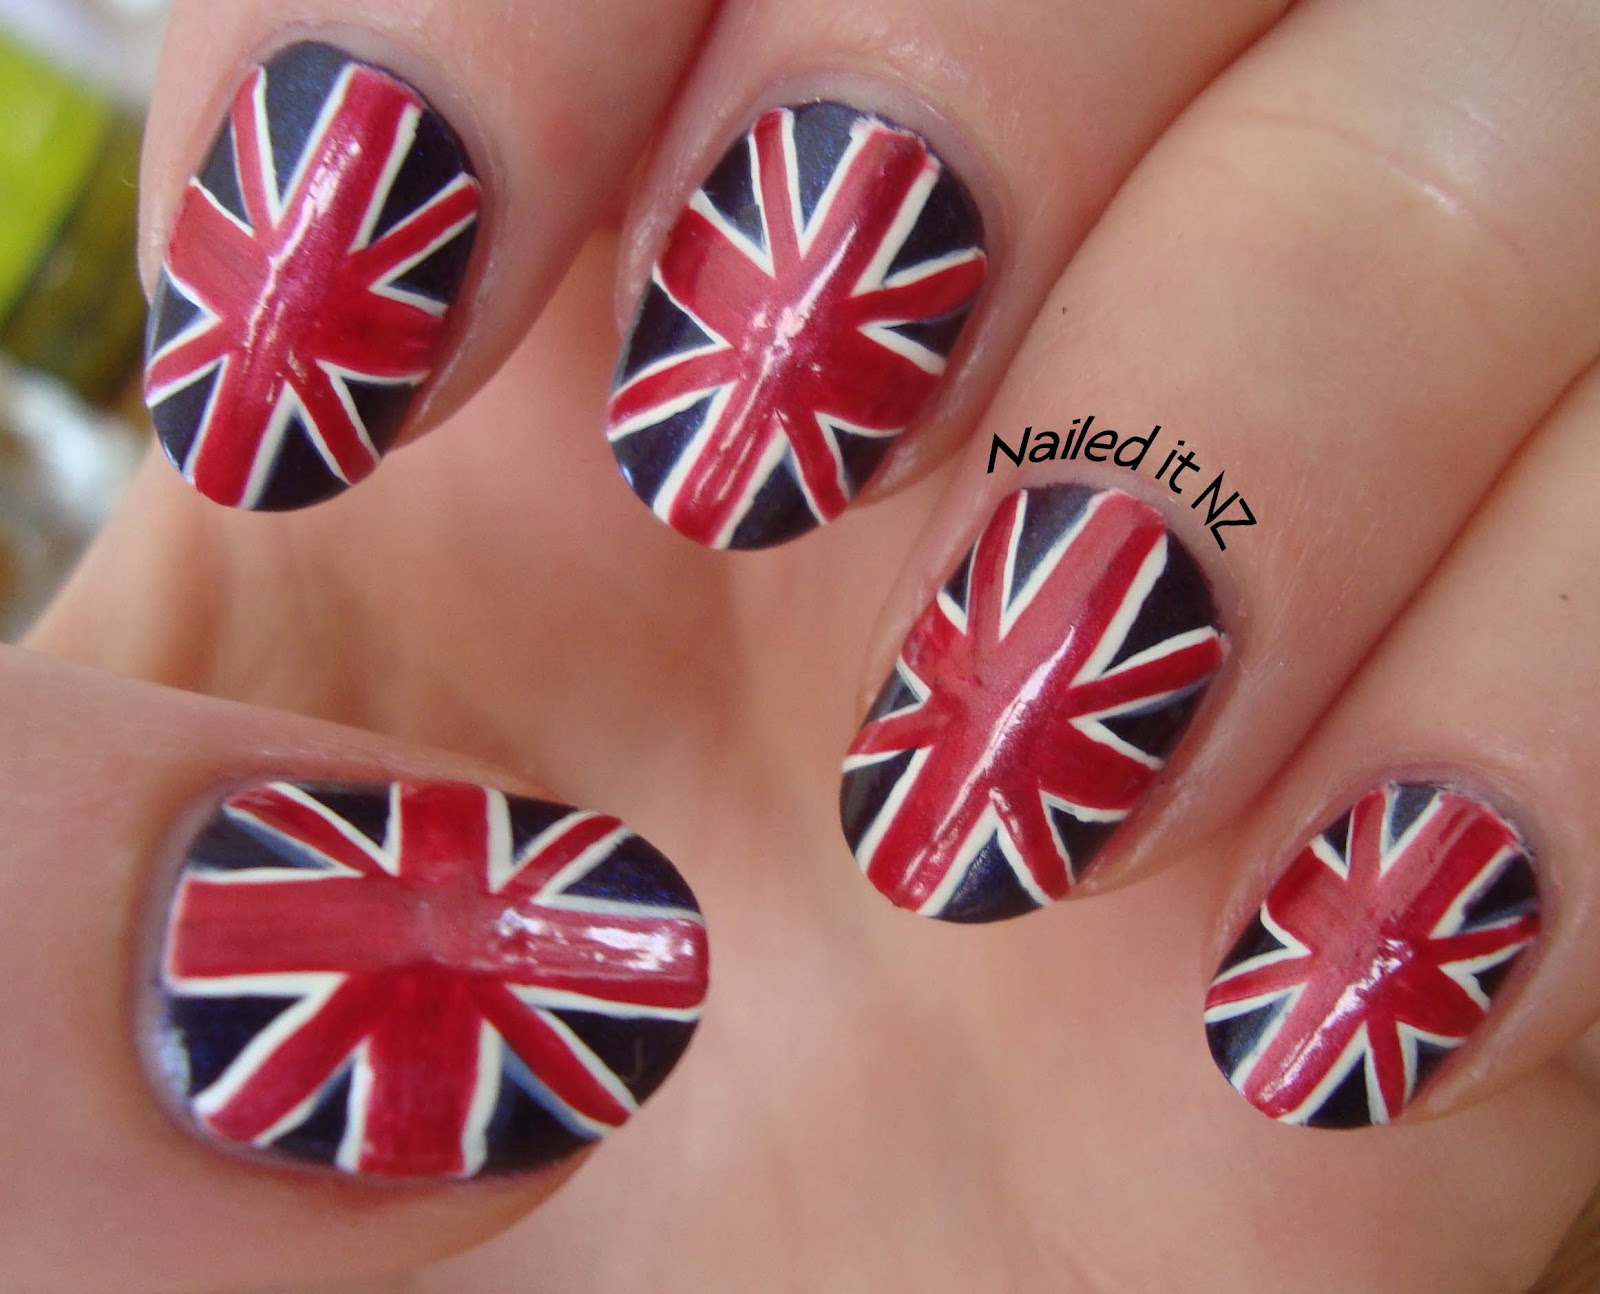 Union Jack nails AND my full nail polish collection!